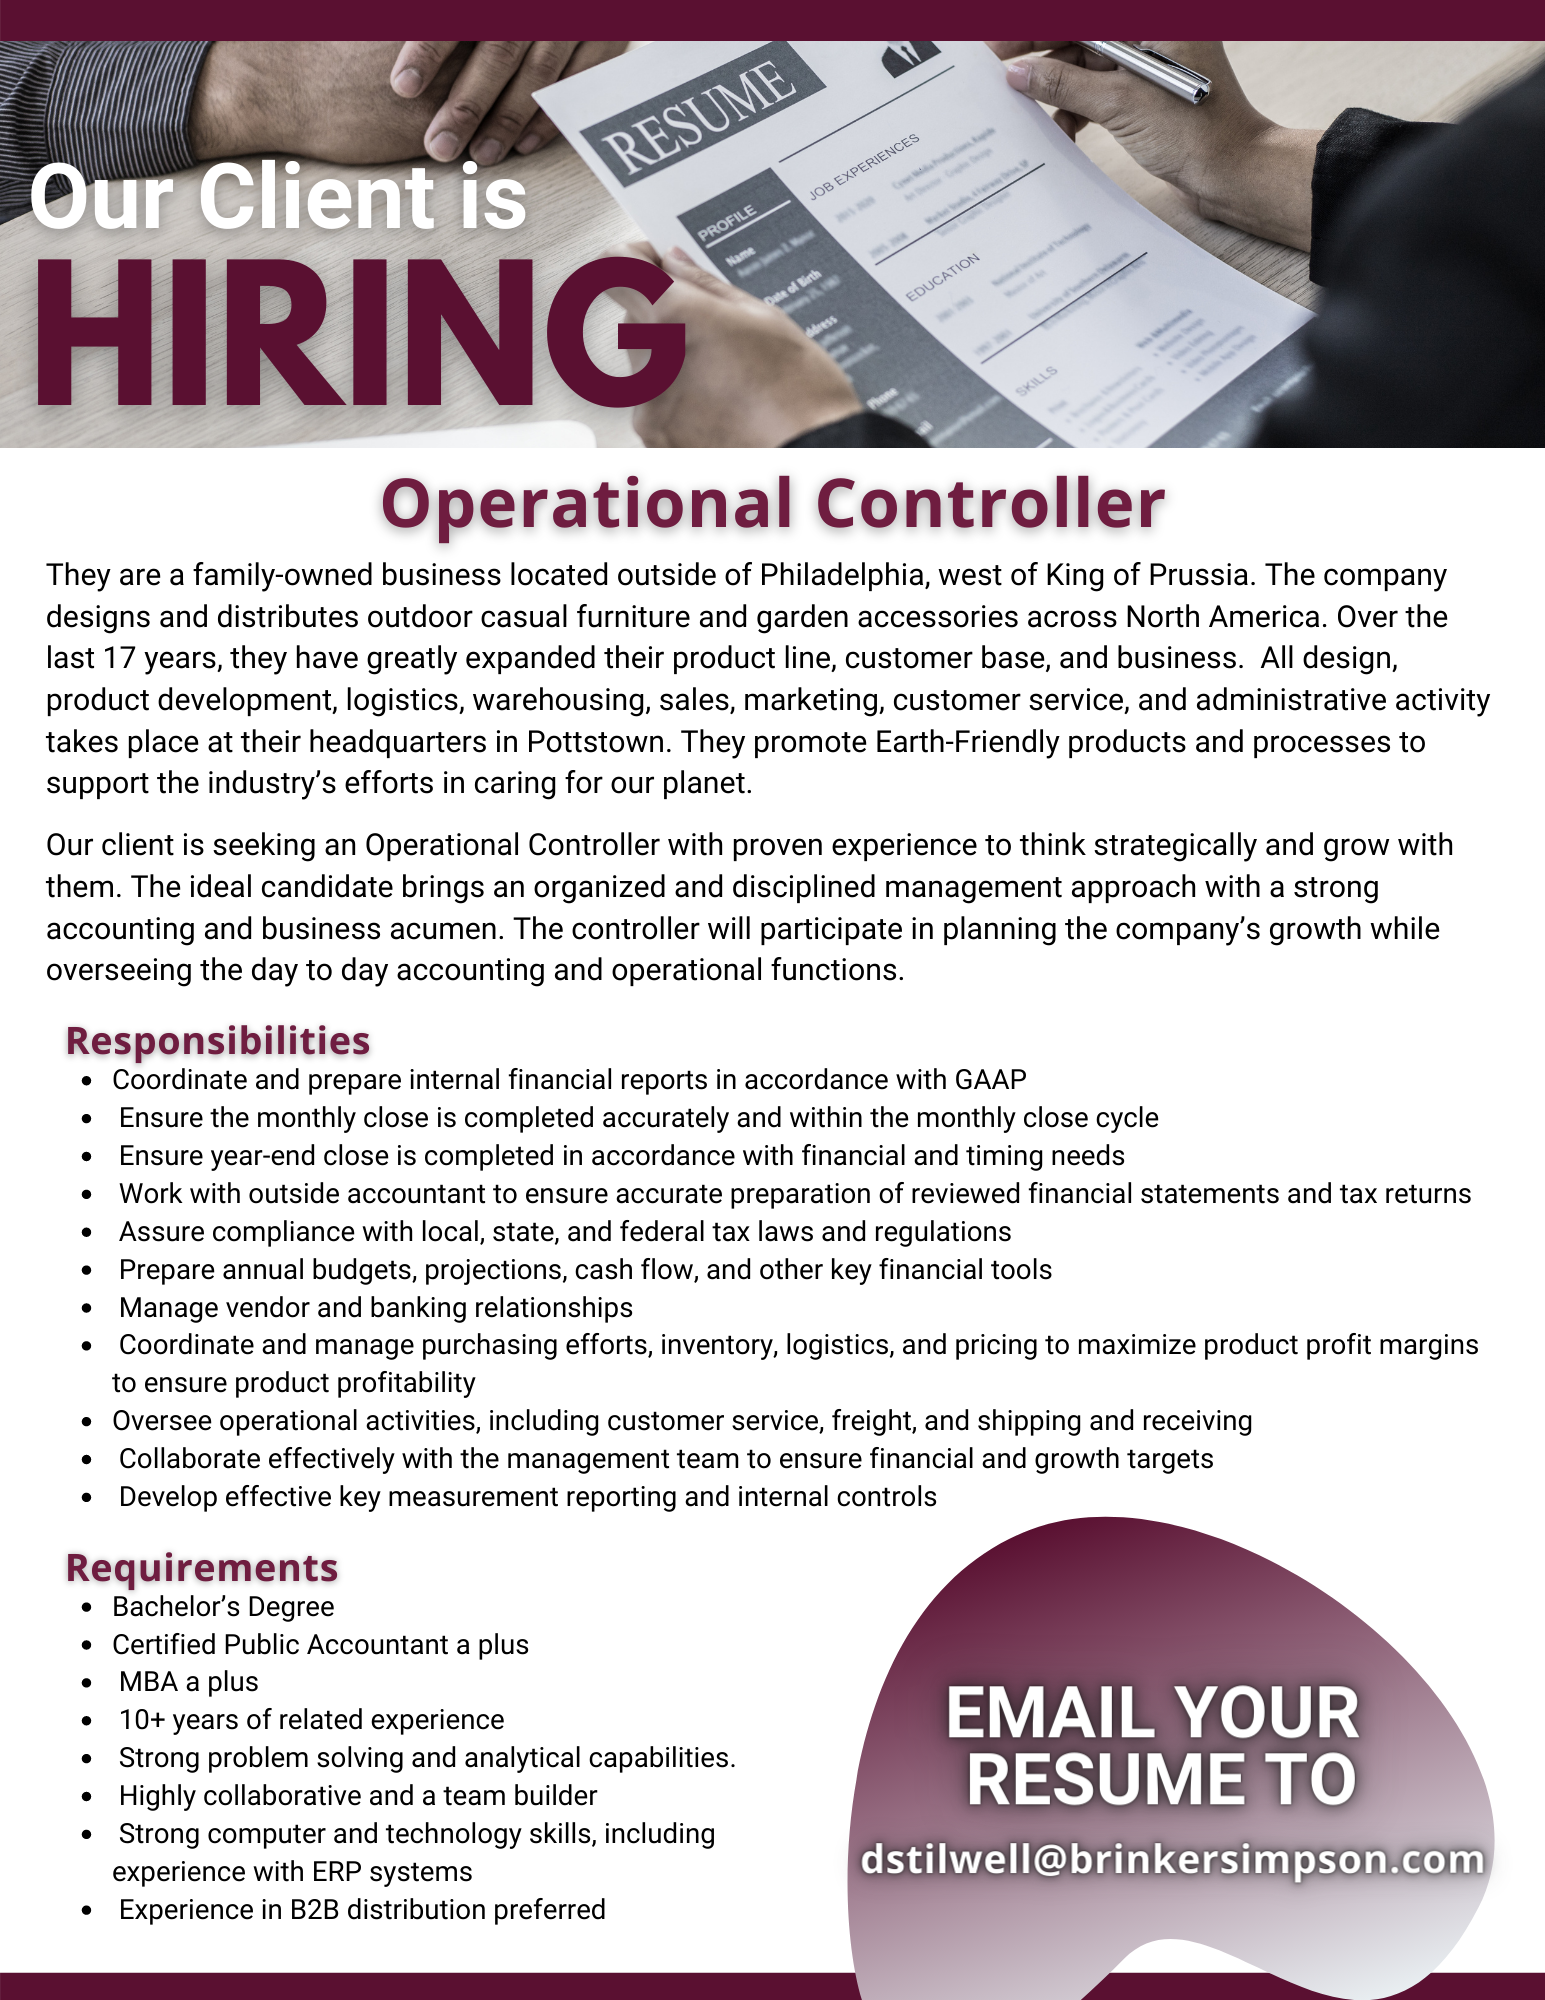 OperationalController_Flyer